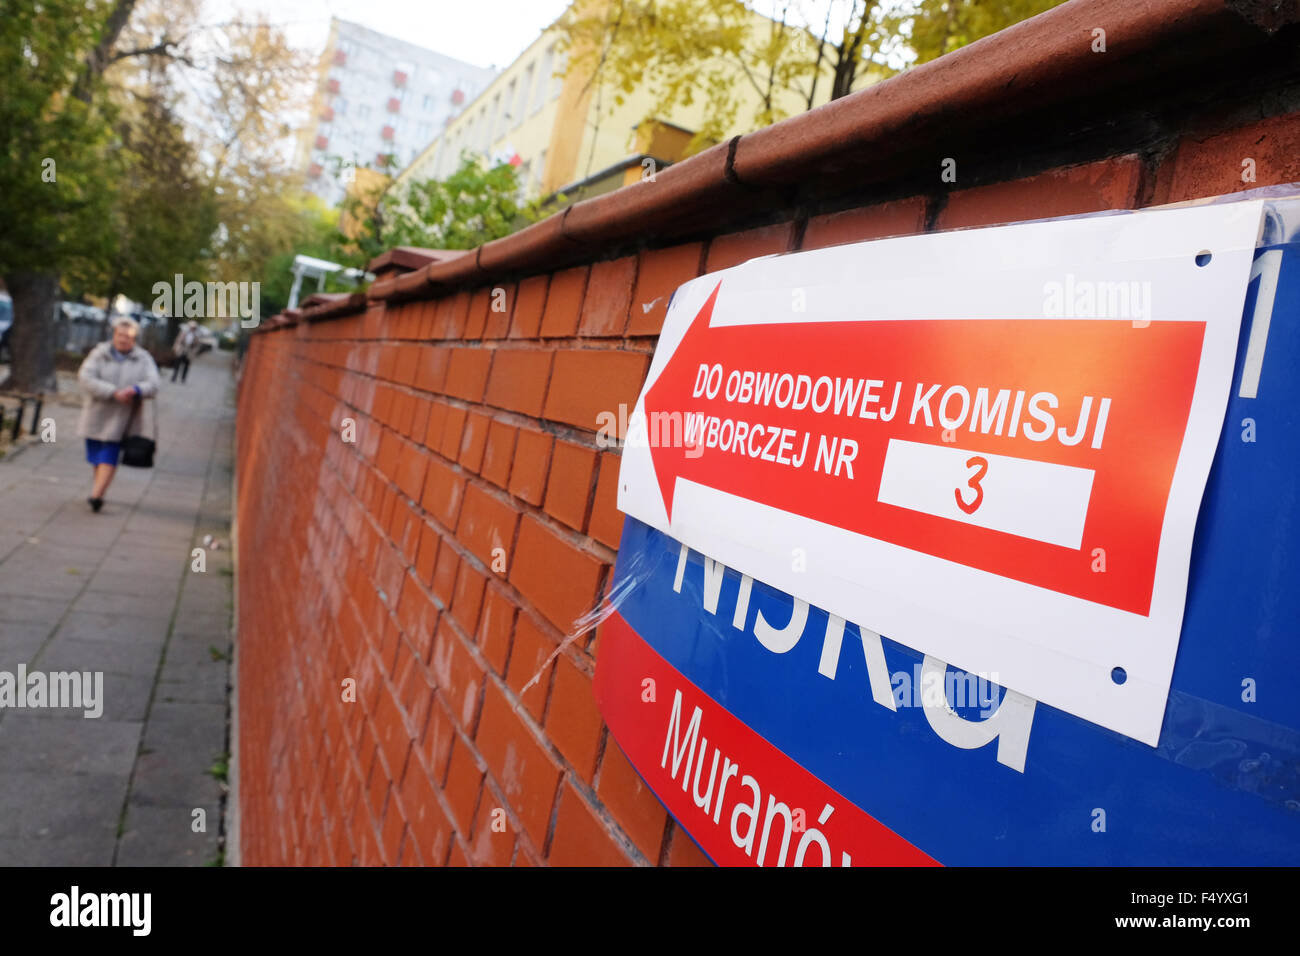 Warsaw, Poland - Sunday 25th October 2015 - National parliamentary election - Polling Station entrance  sign outside - Stock Image